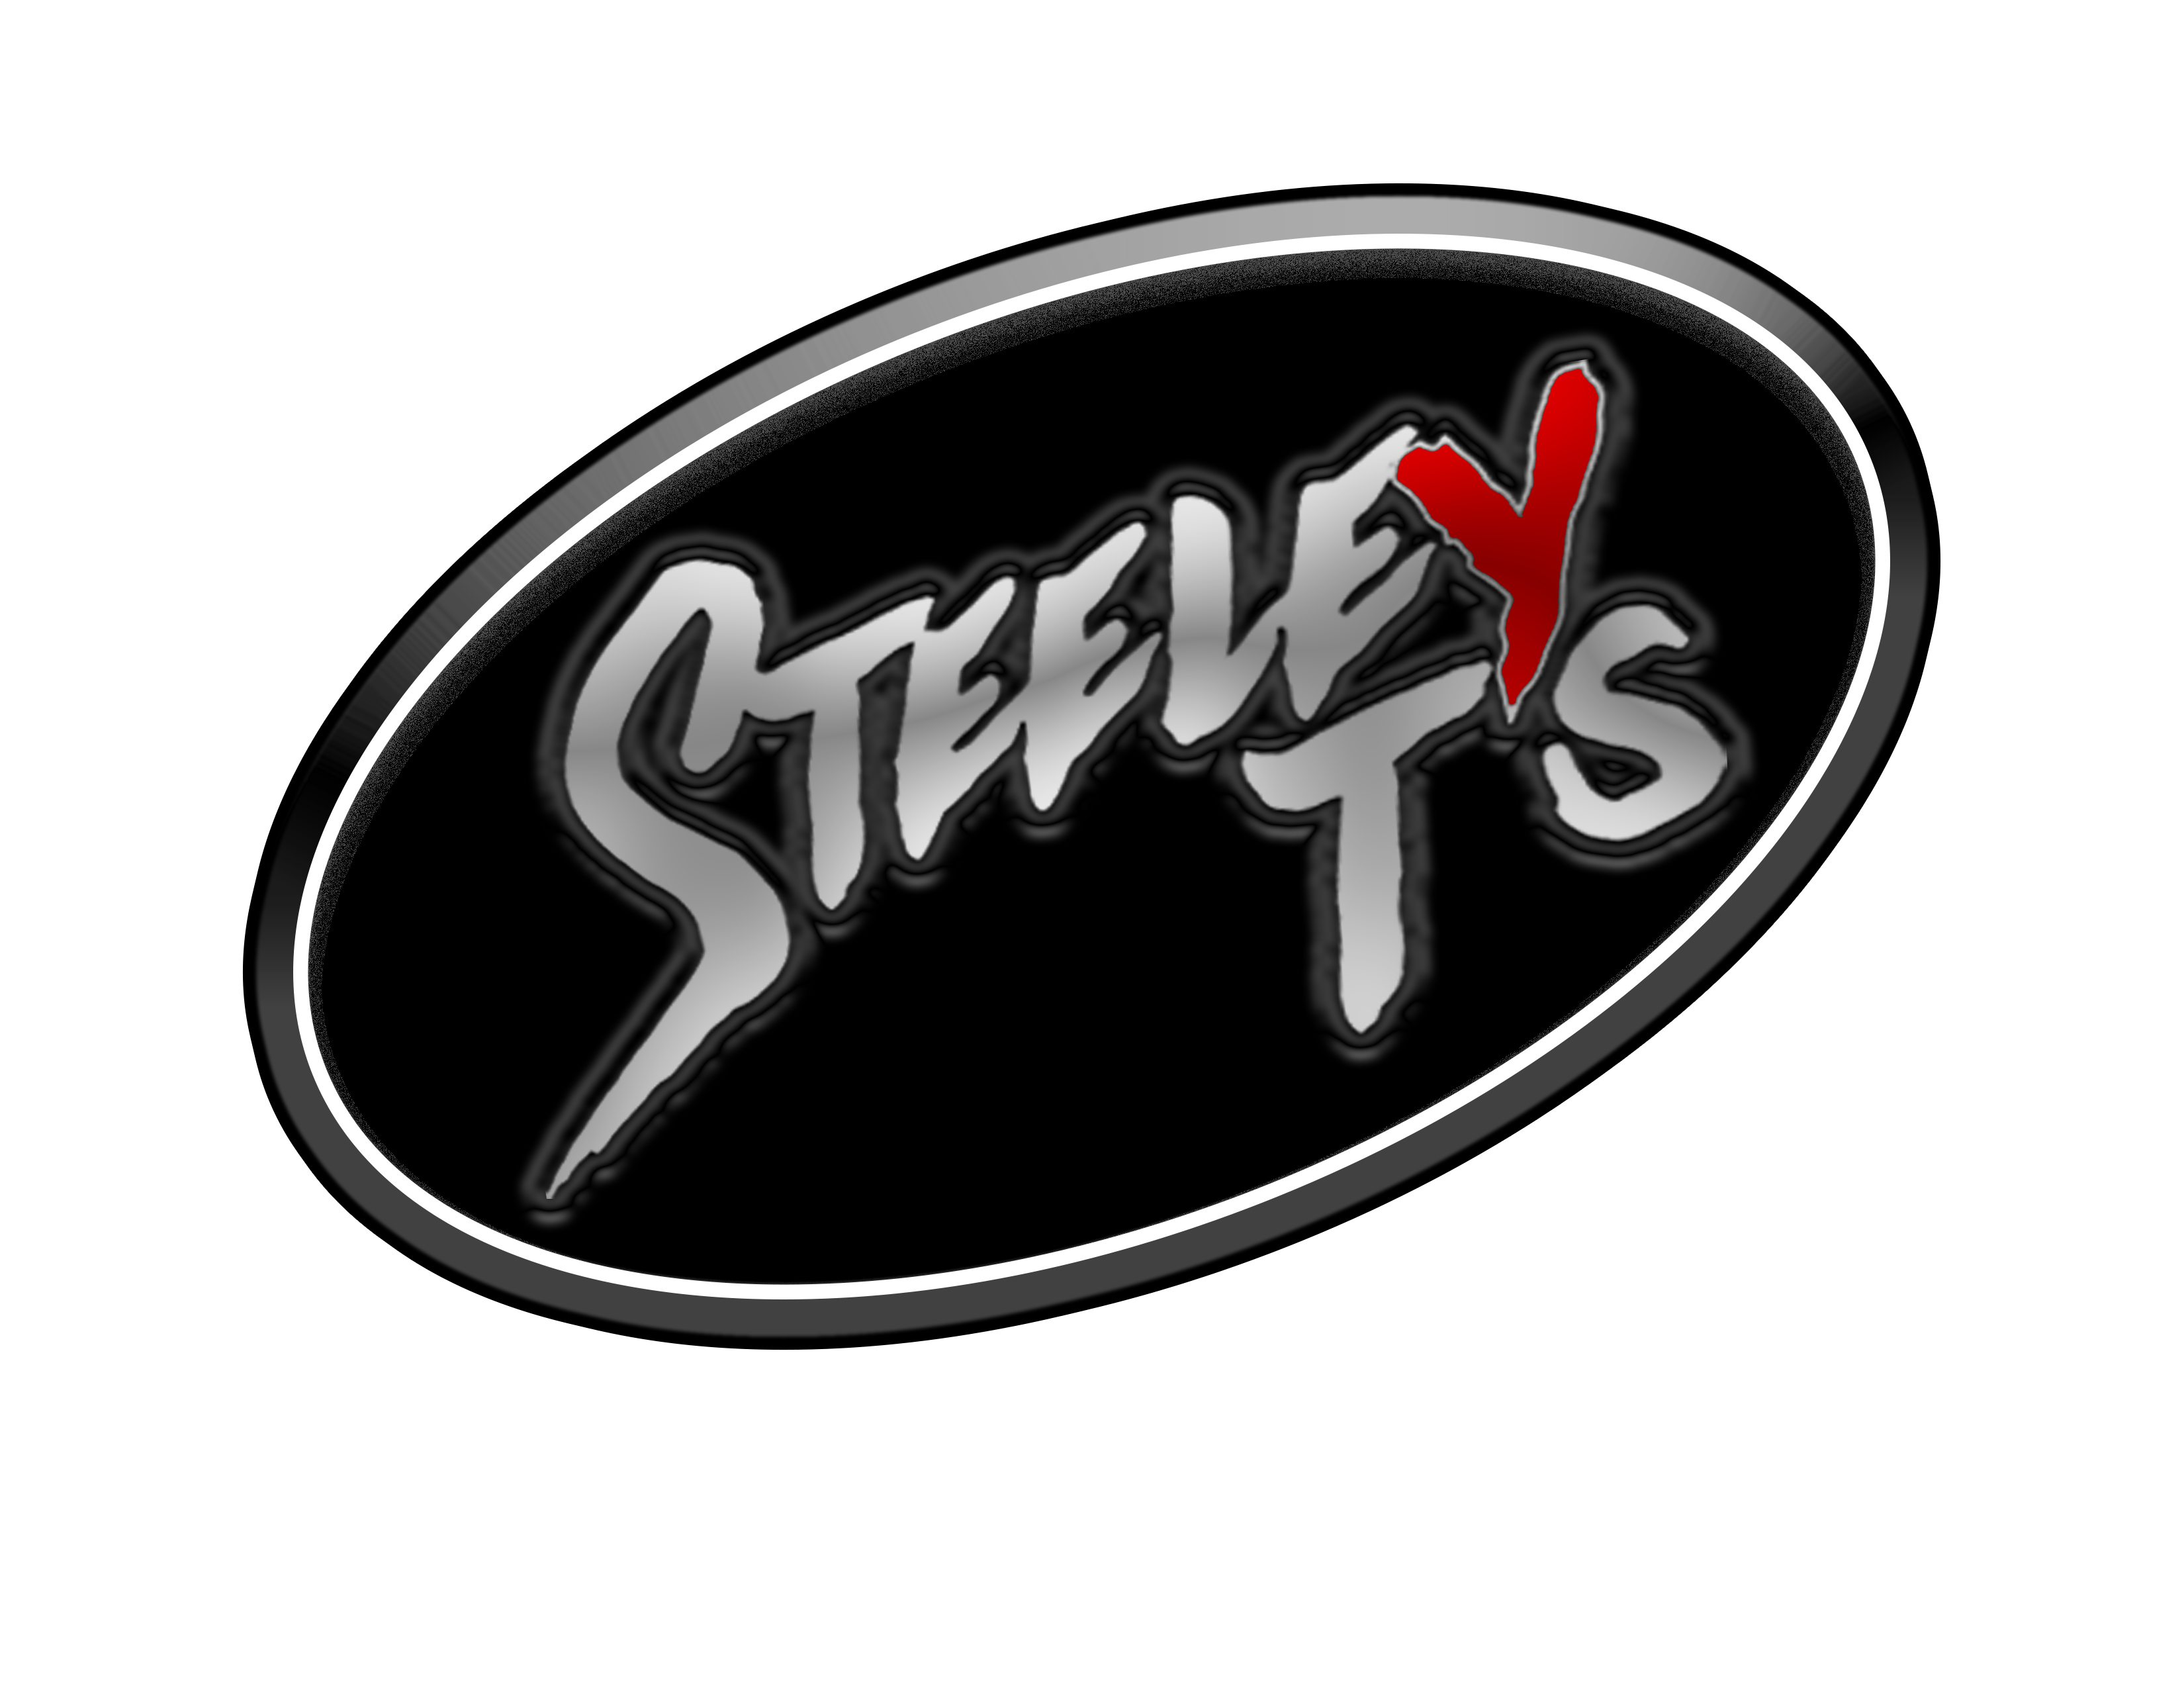 Steeley T's